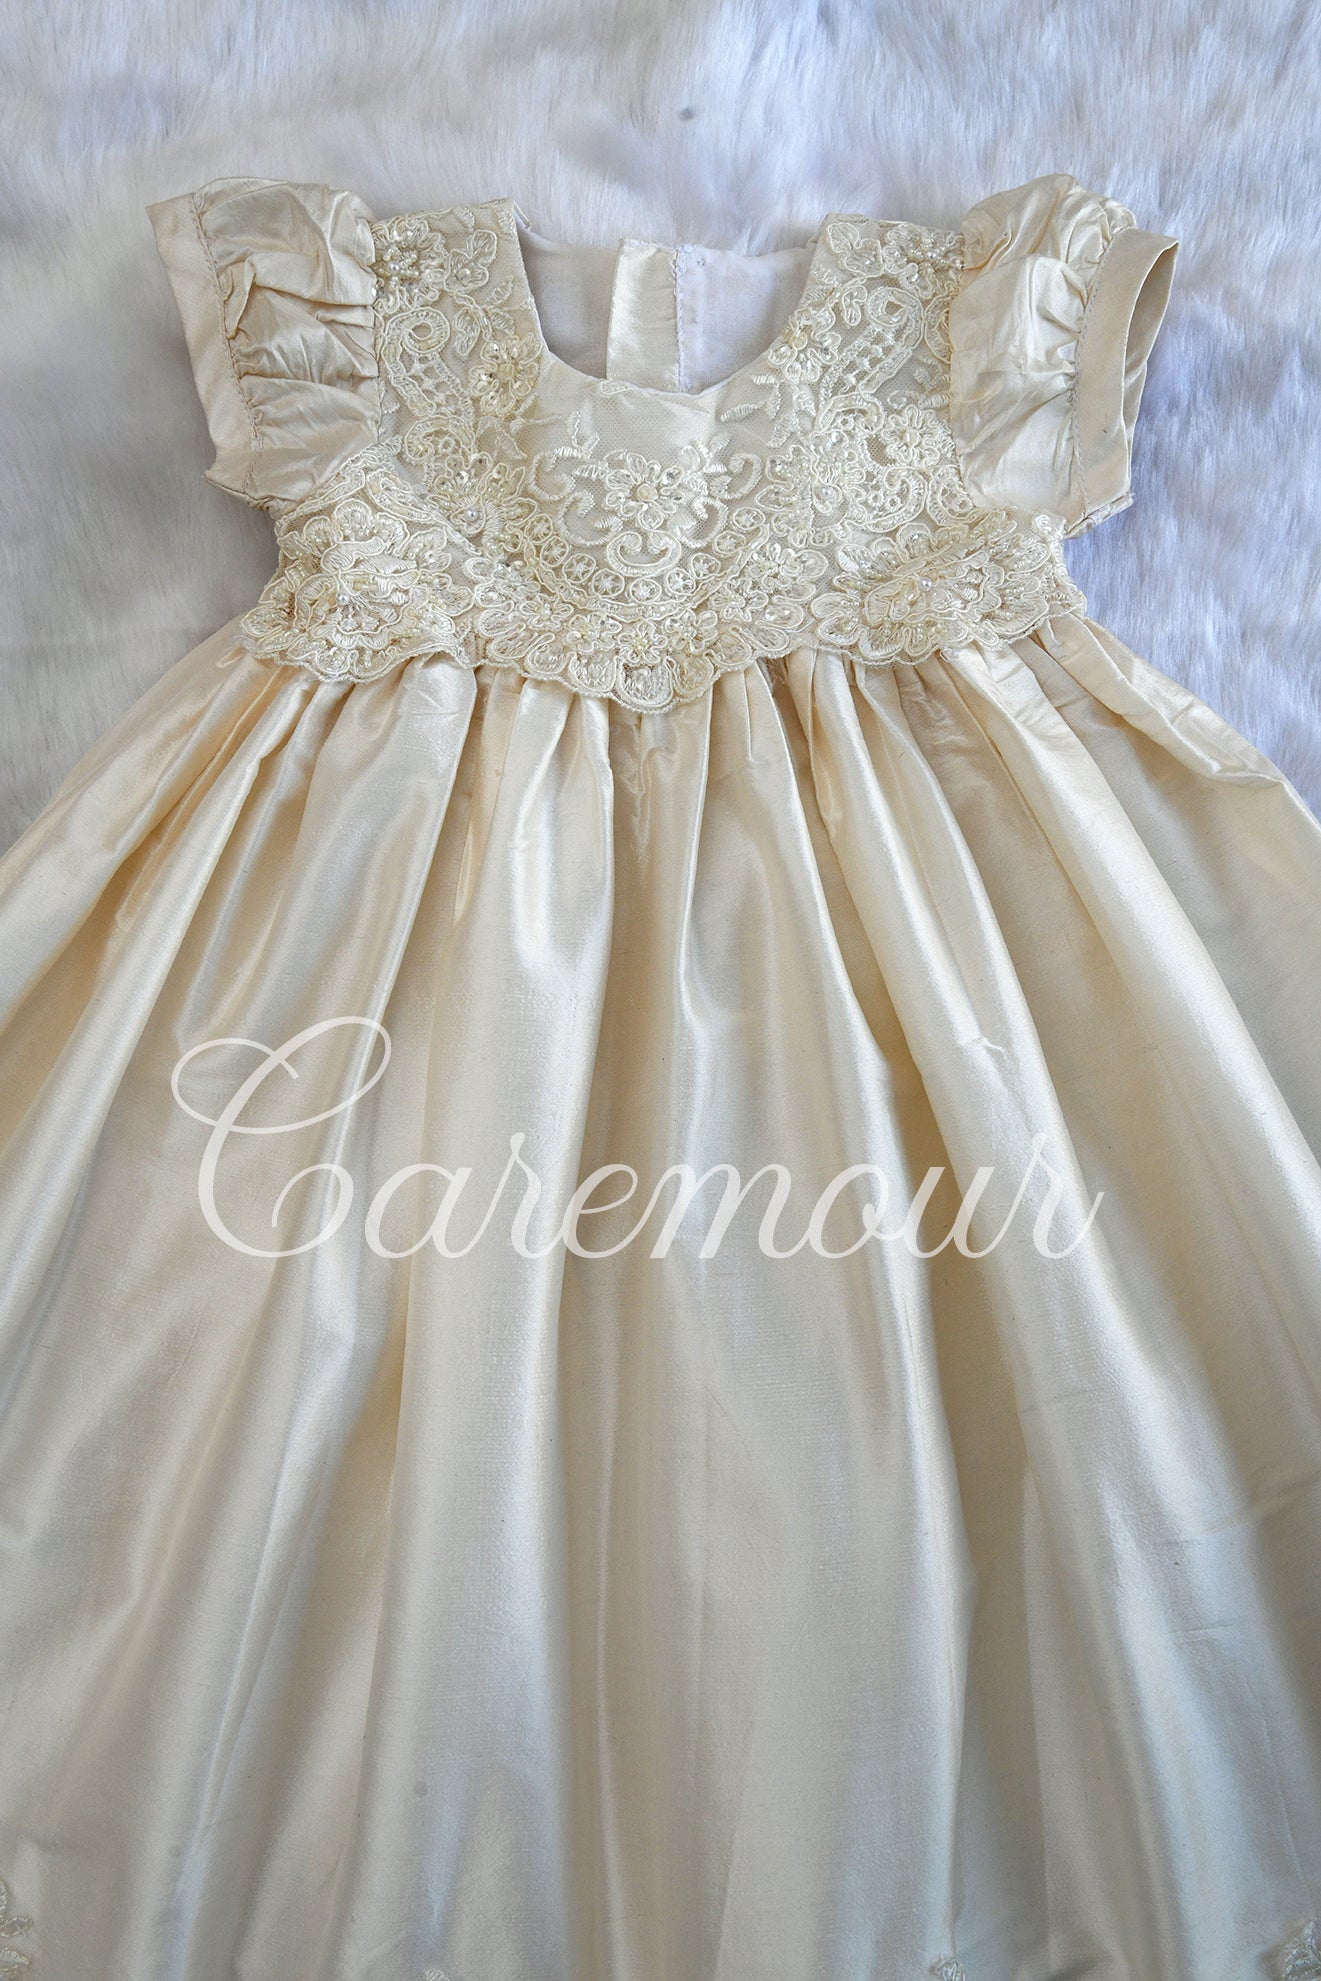 Royal Cute Christening dress - Christening gown, Christening gowns ...